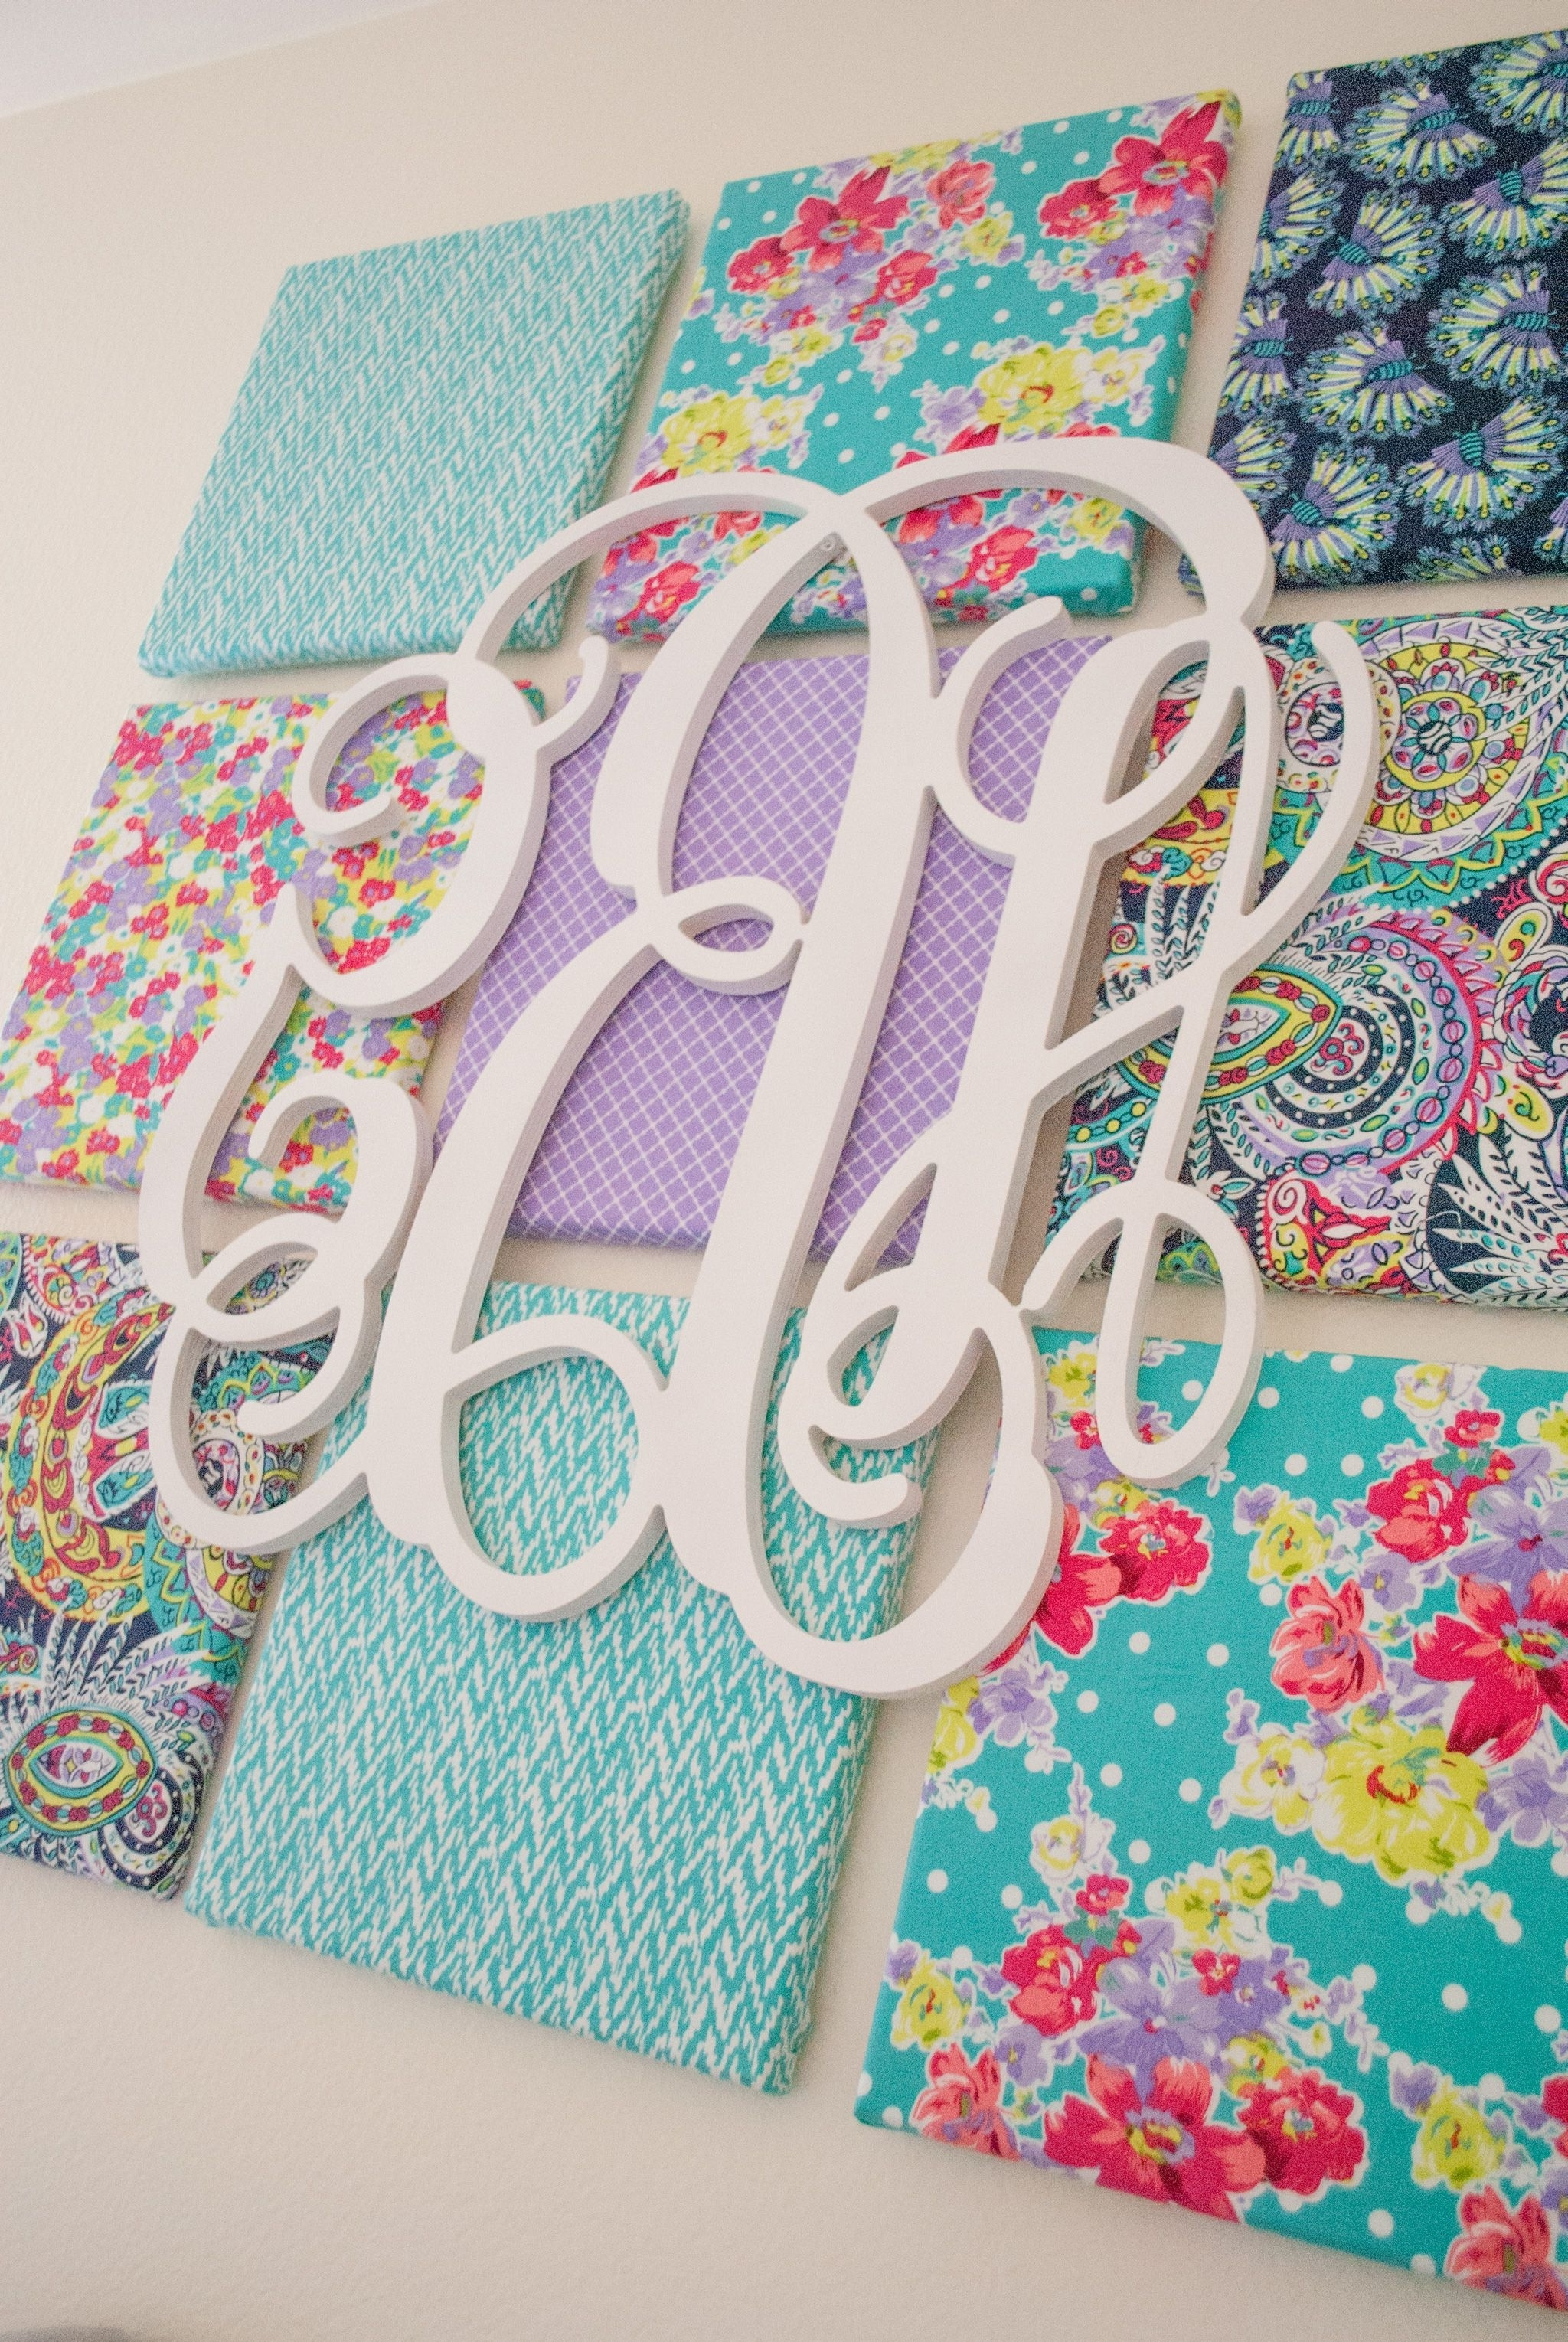 Monogram Wall, Kids Rooms And Monograms In Fabric Wall Art For Nursery (View 9 of 15)